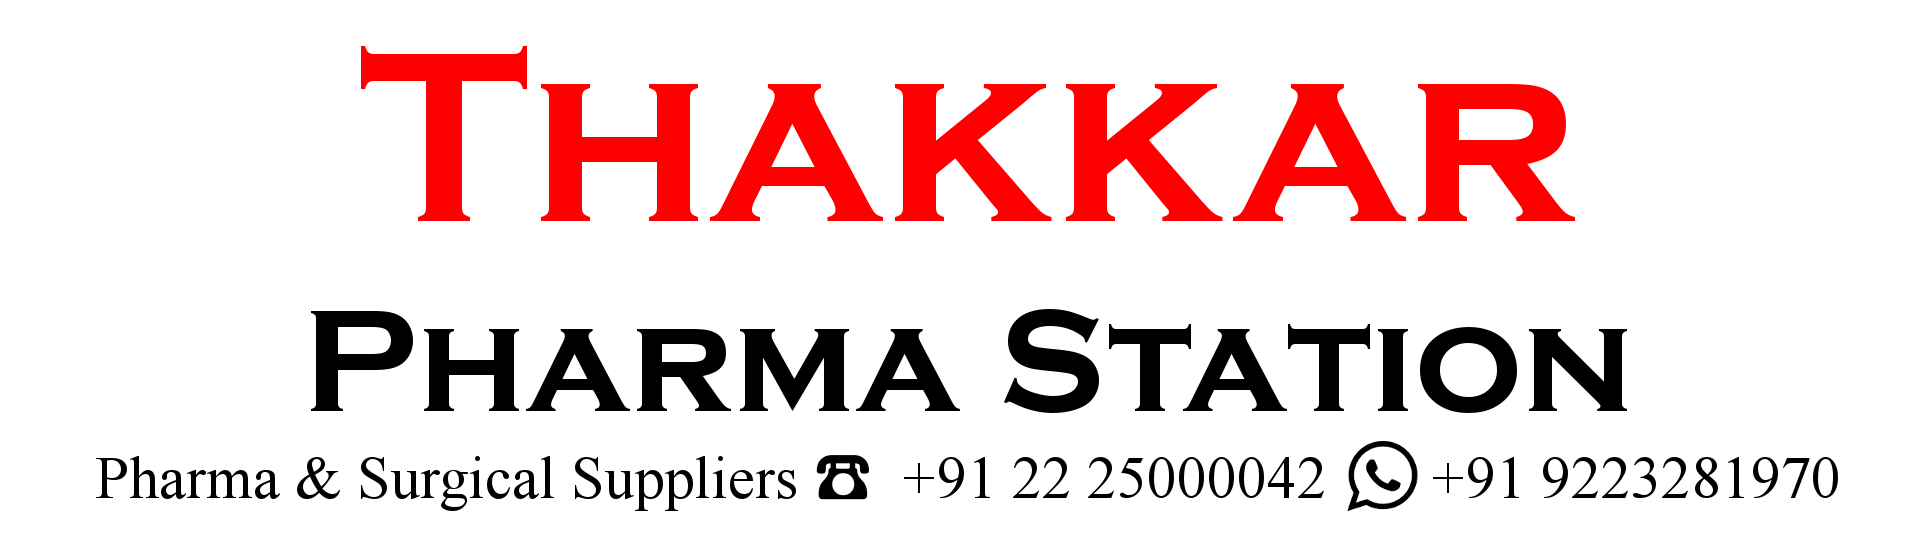 Thakkar Pharma Station